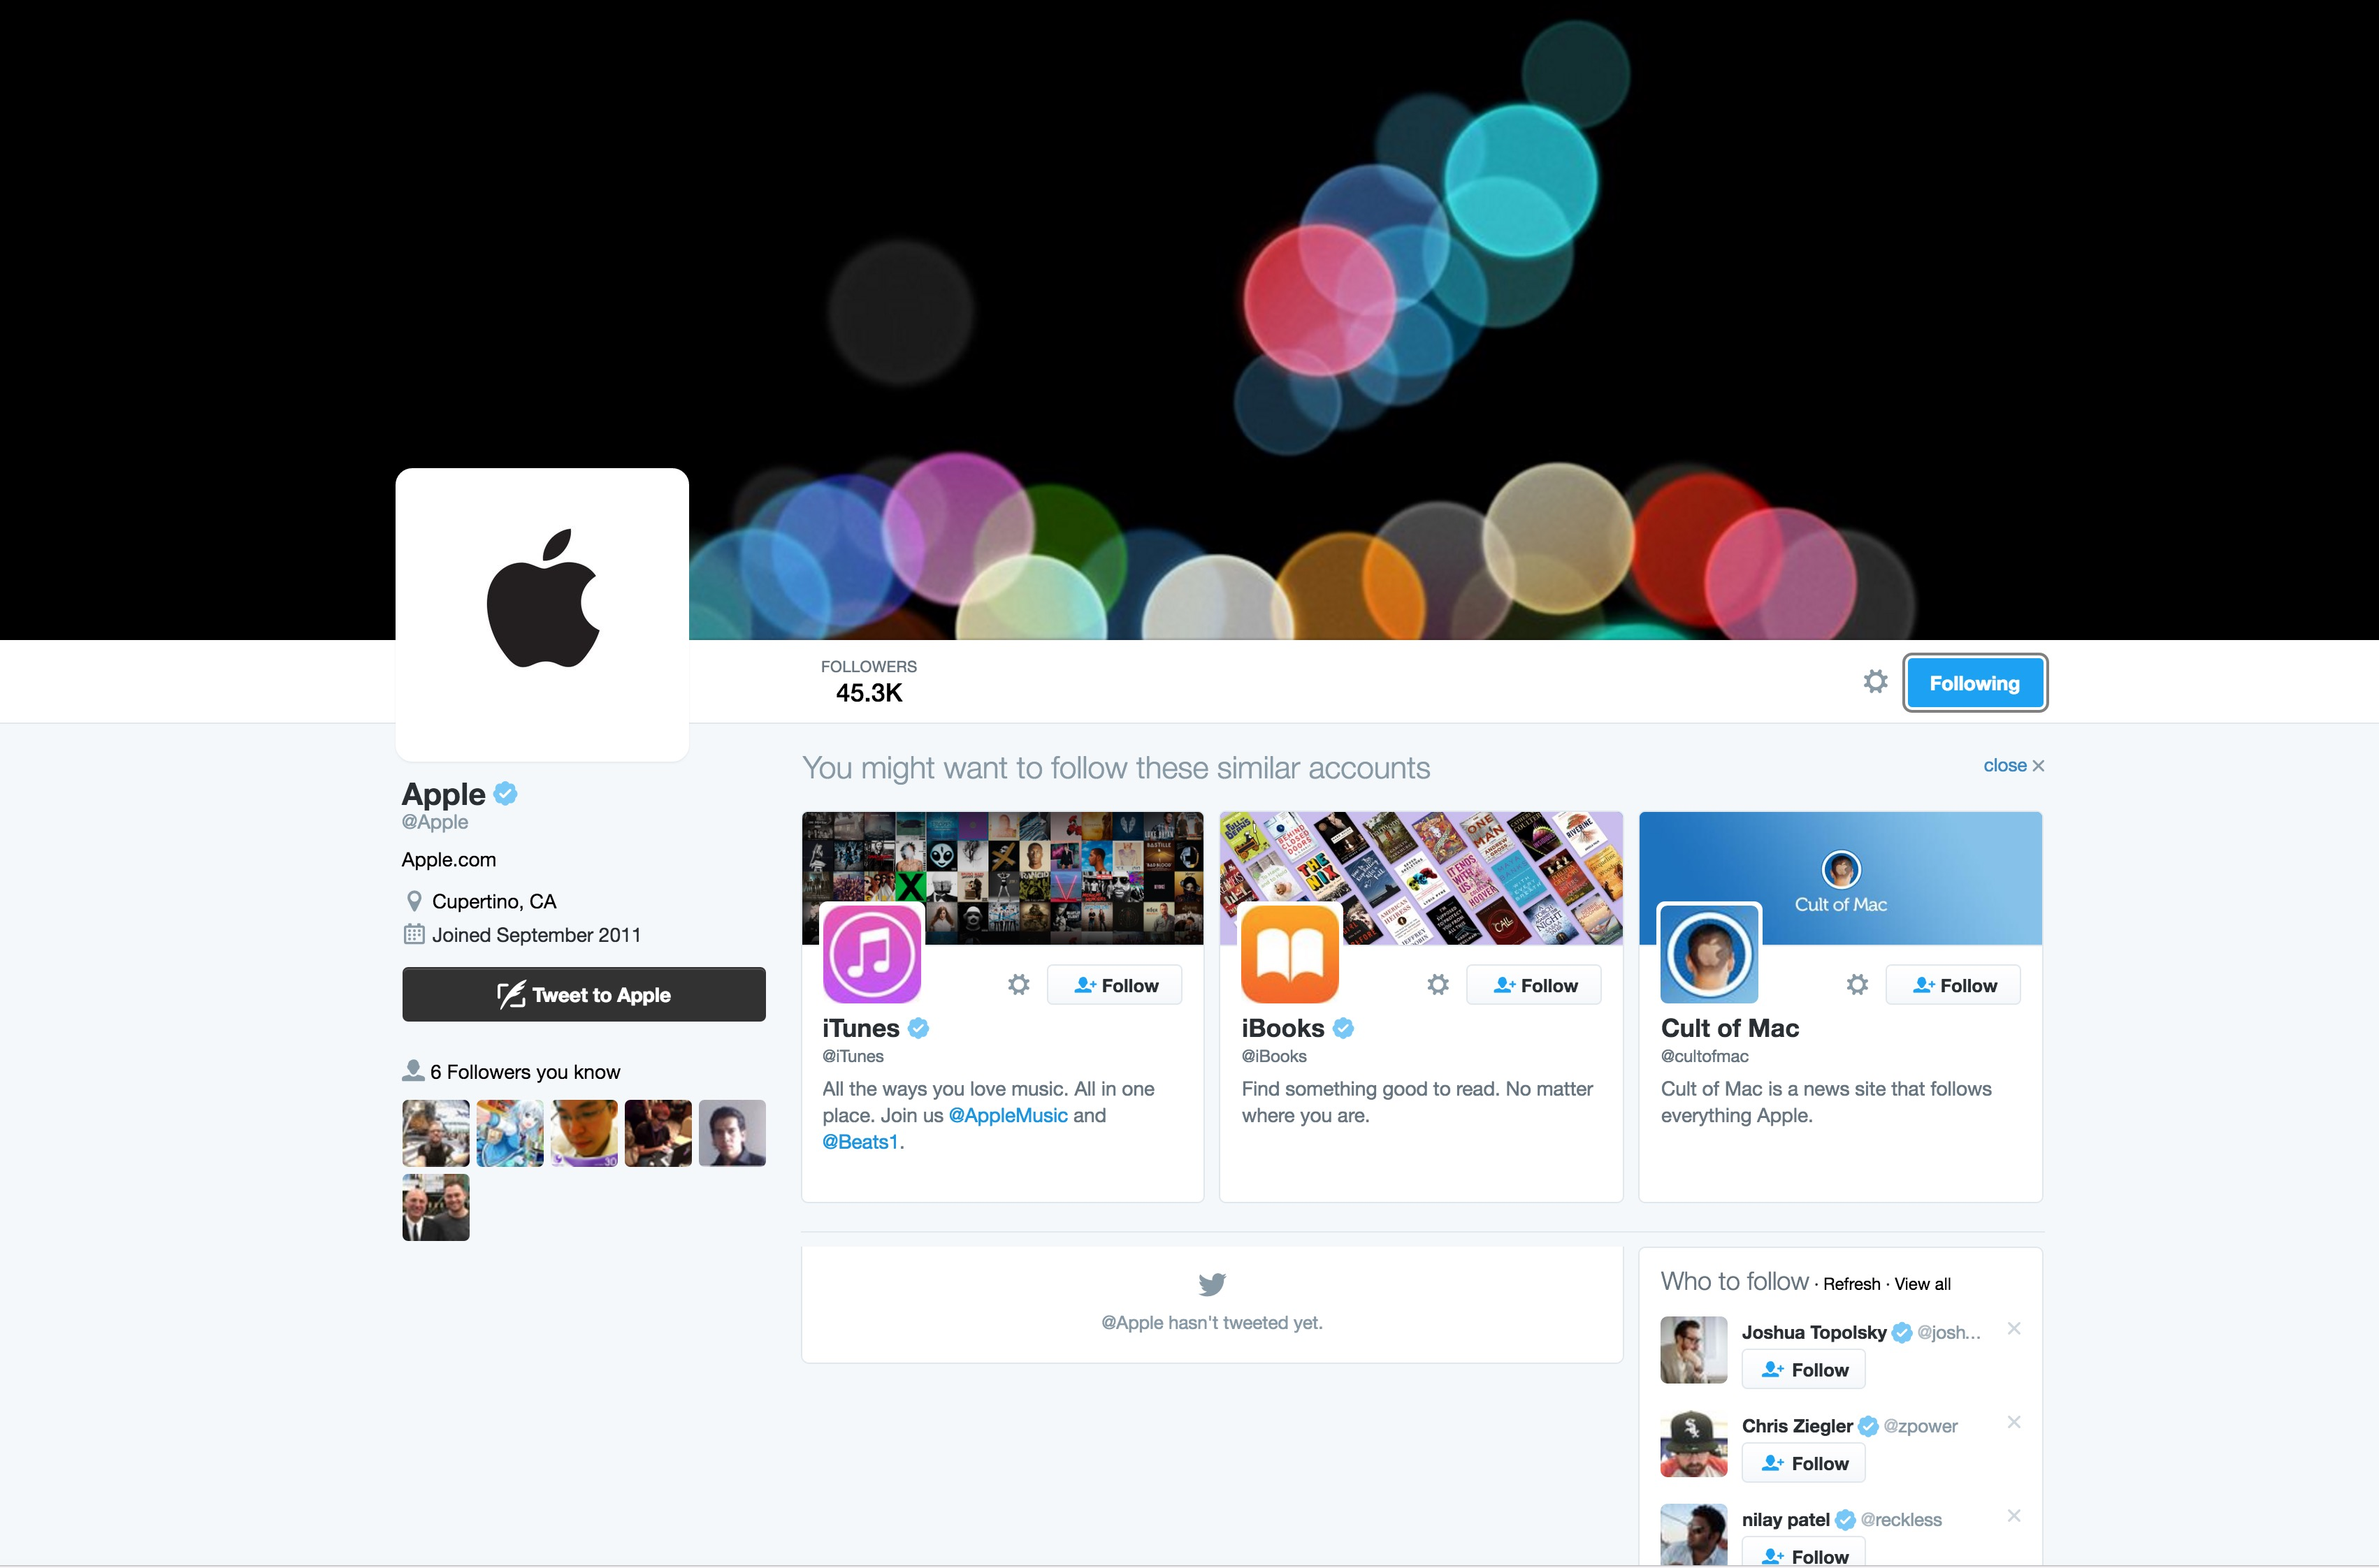 apple twitter account